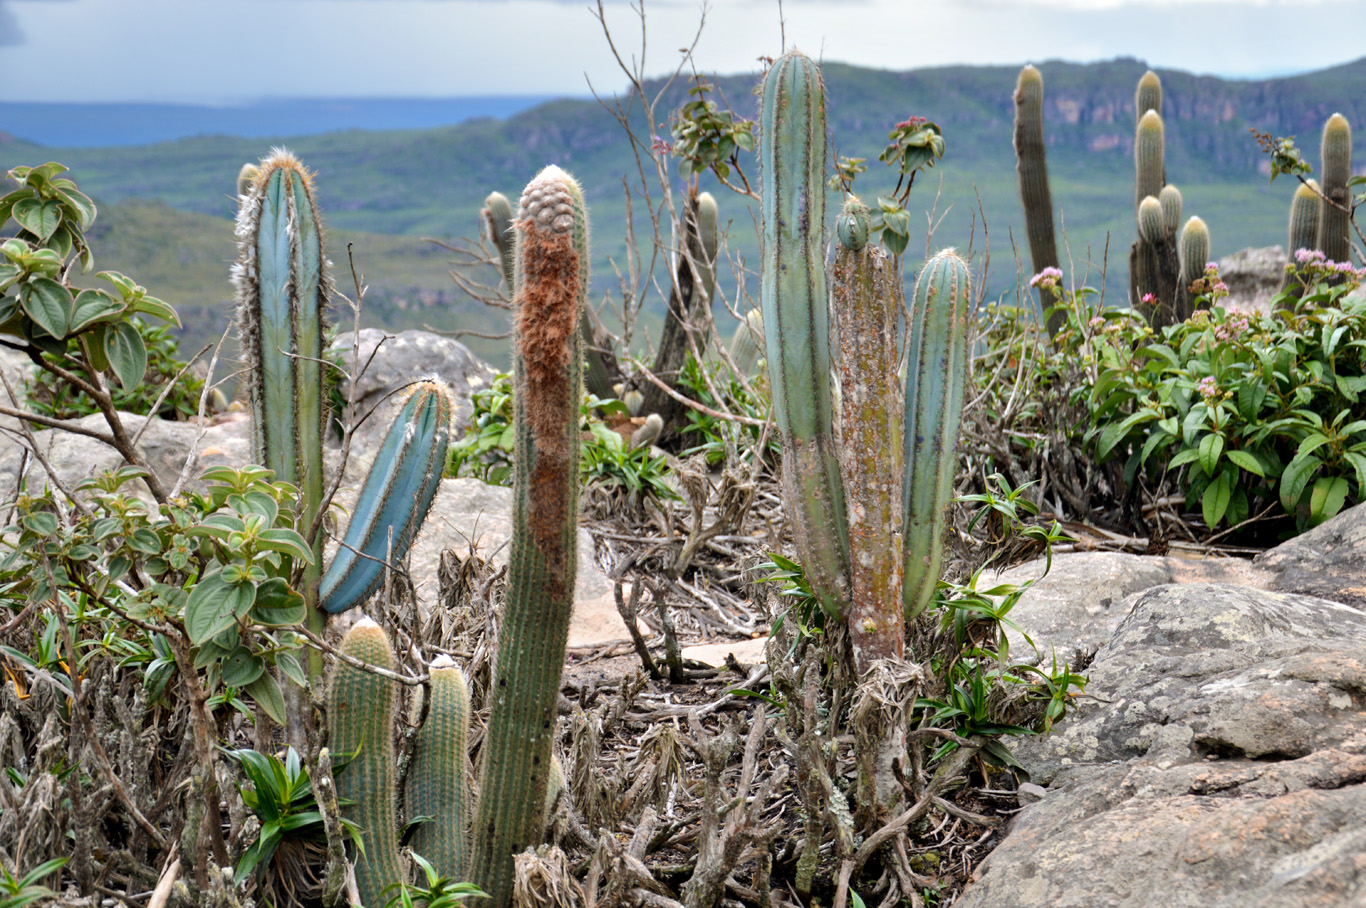 Cactus on top of the hill